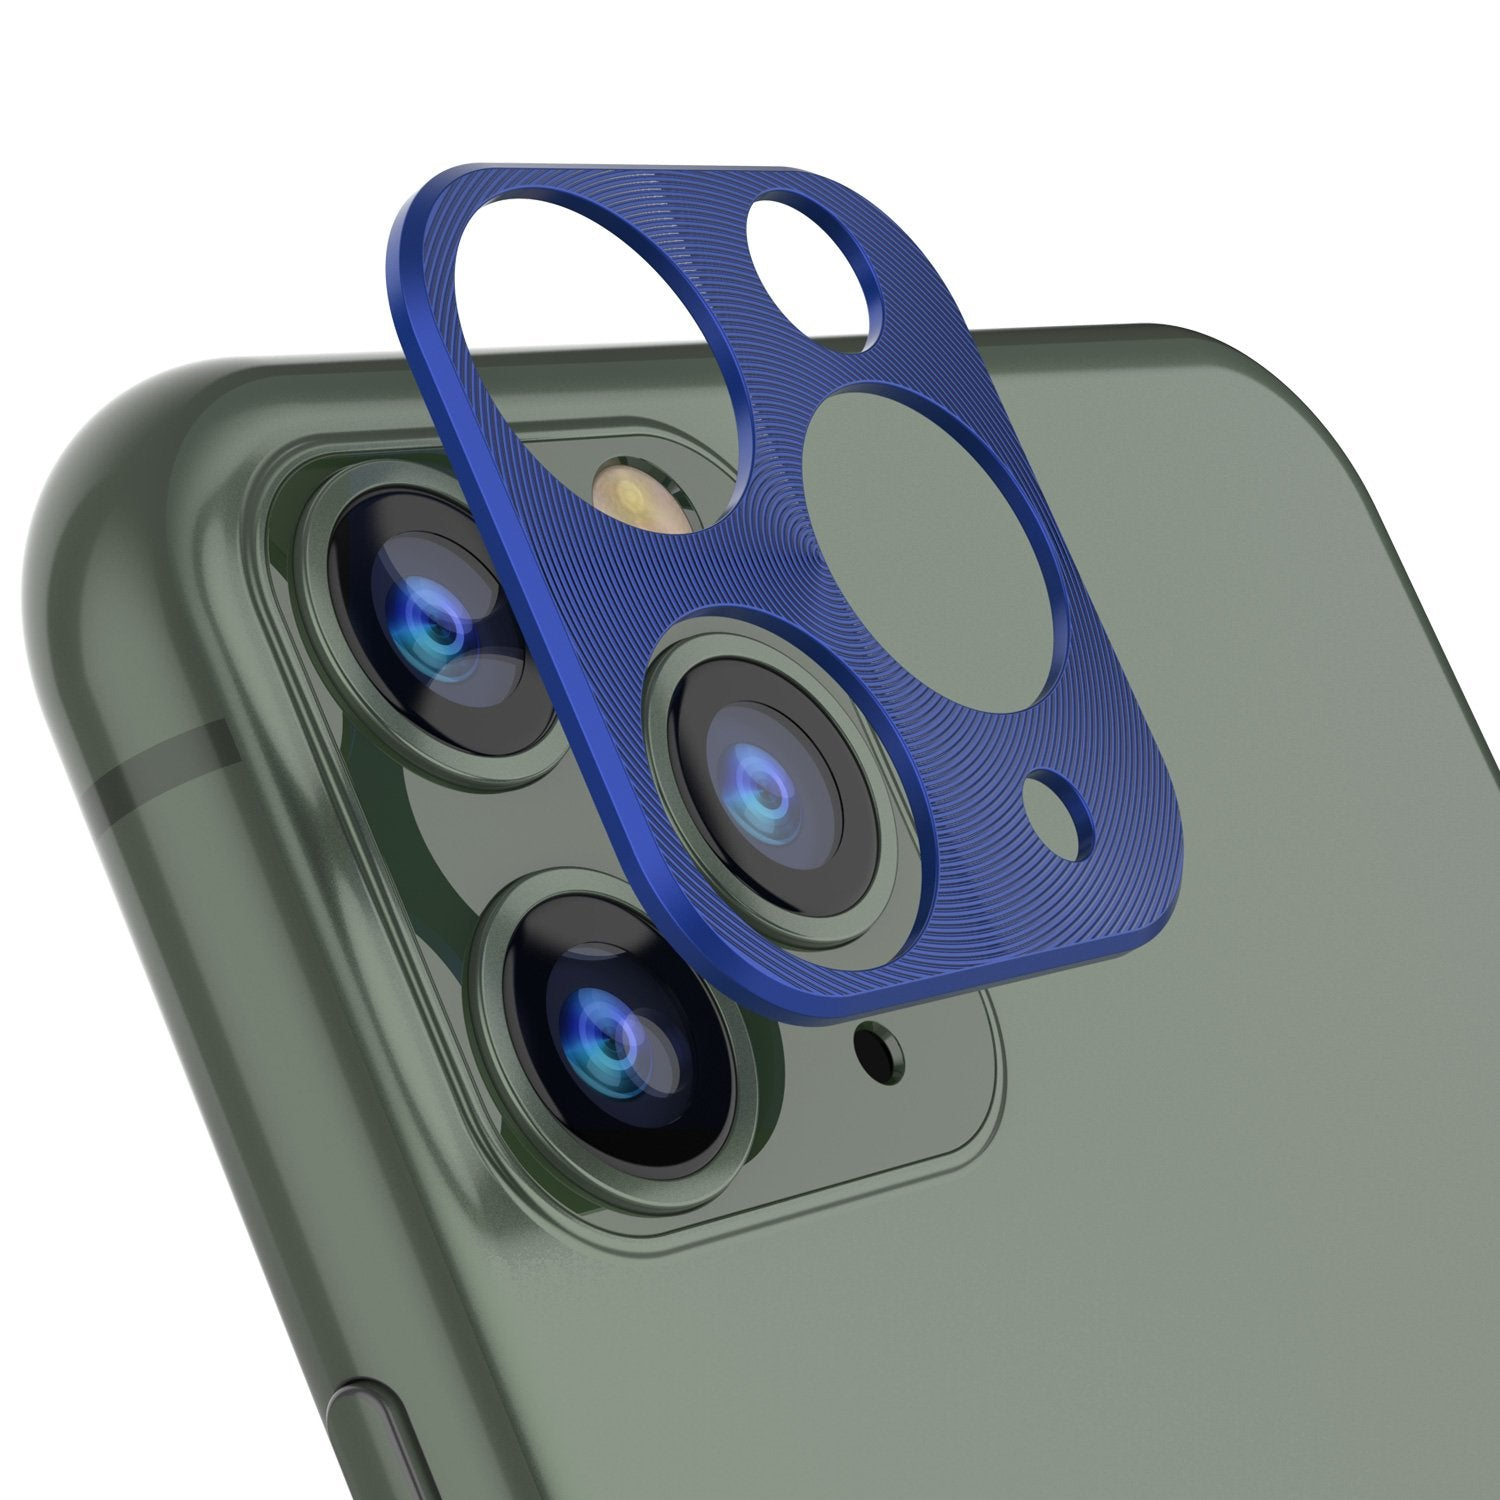 Punkcase iPhone 11 Pro Max Camera Protector Ring [Blue]